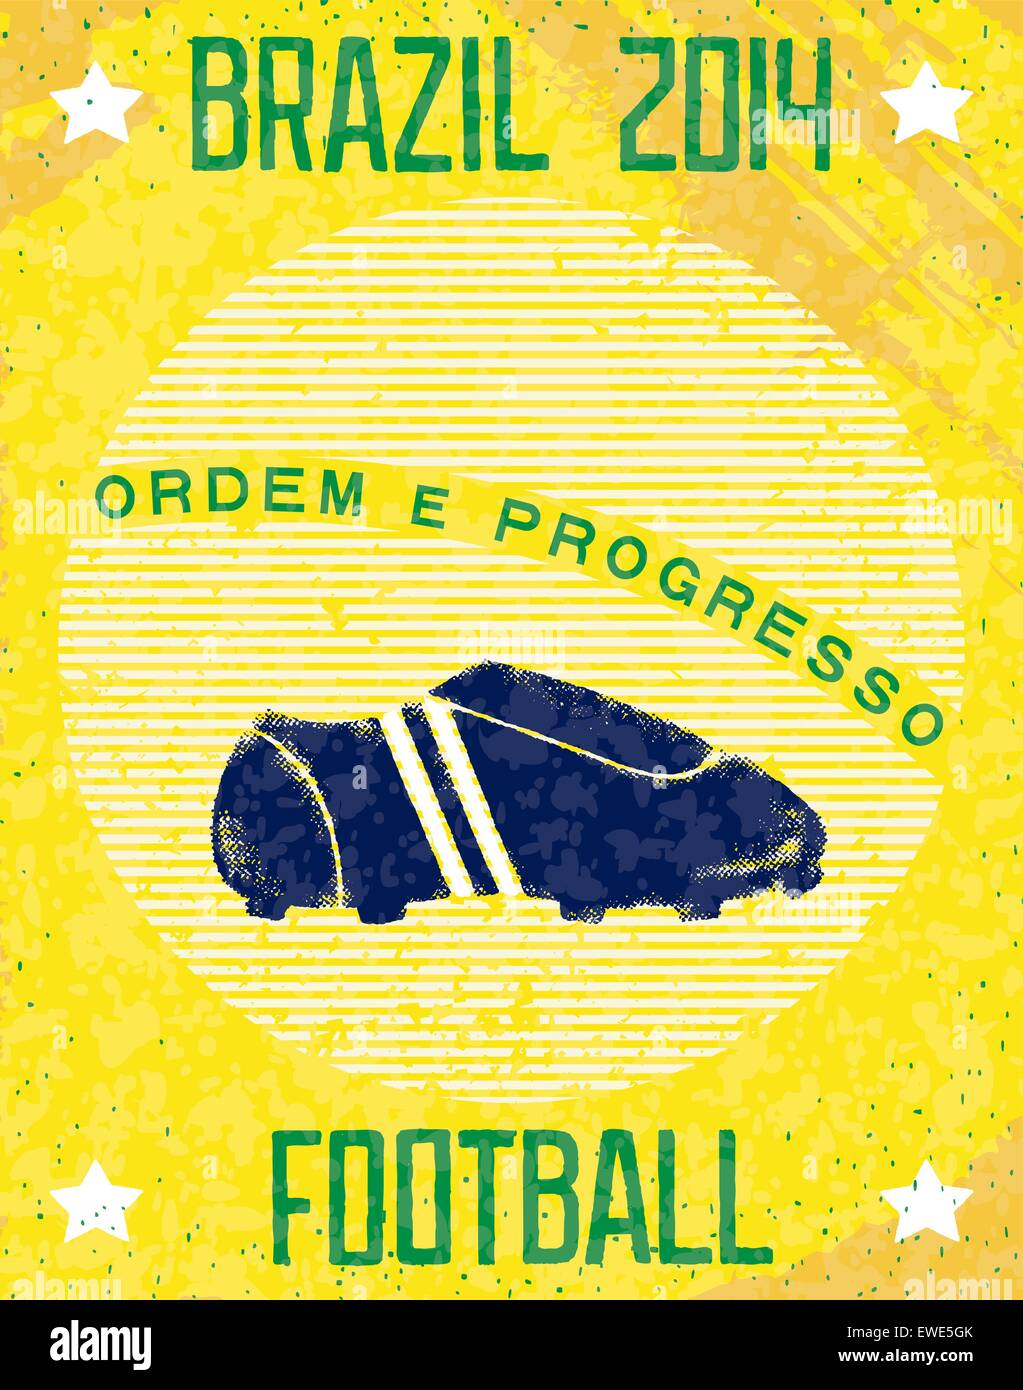 Football Poster Imágenes De Stock & Football Poster Fotos De Stock ...